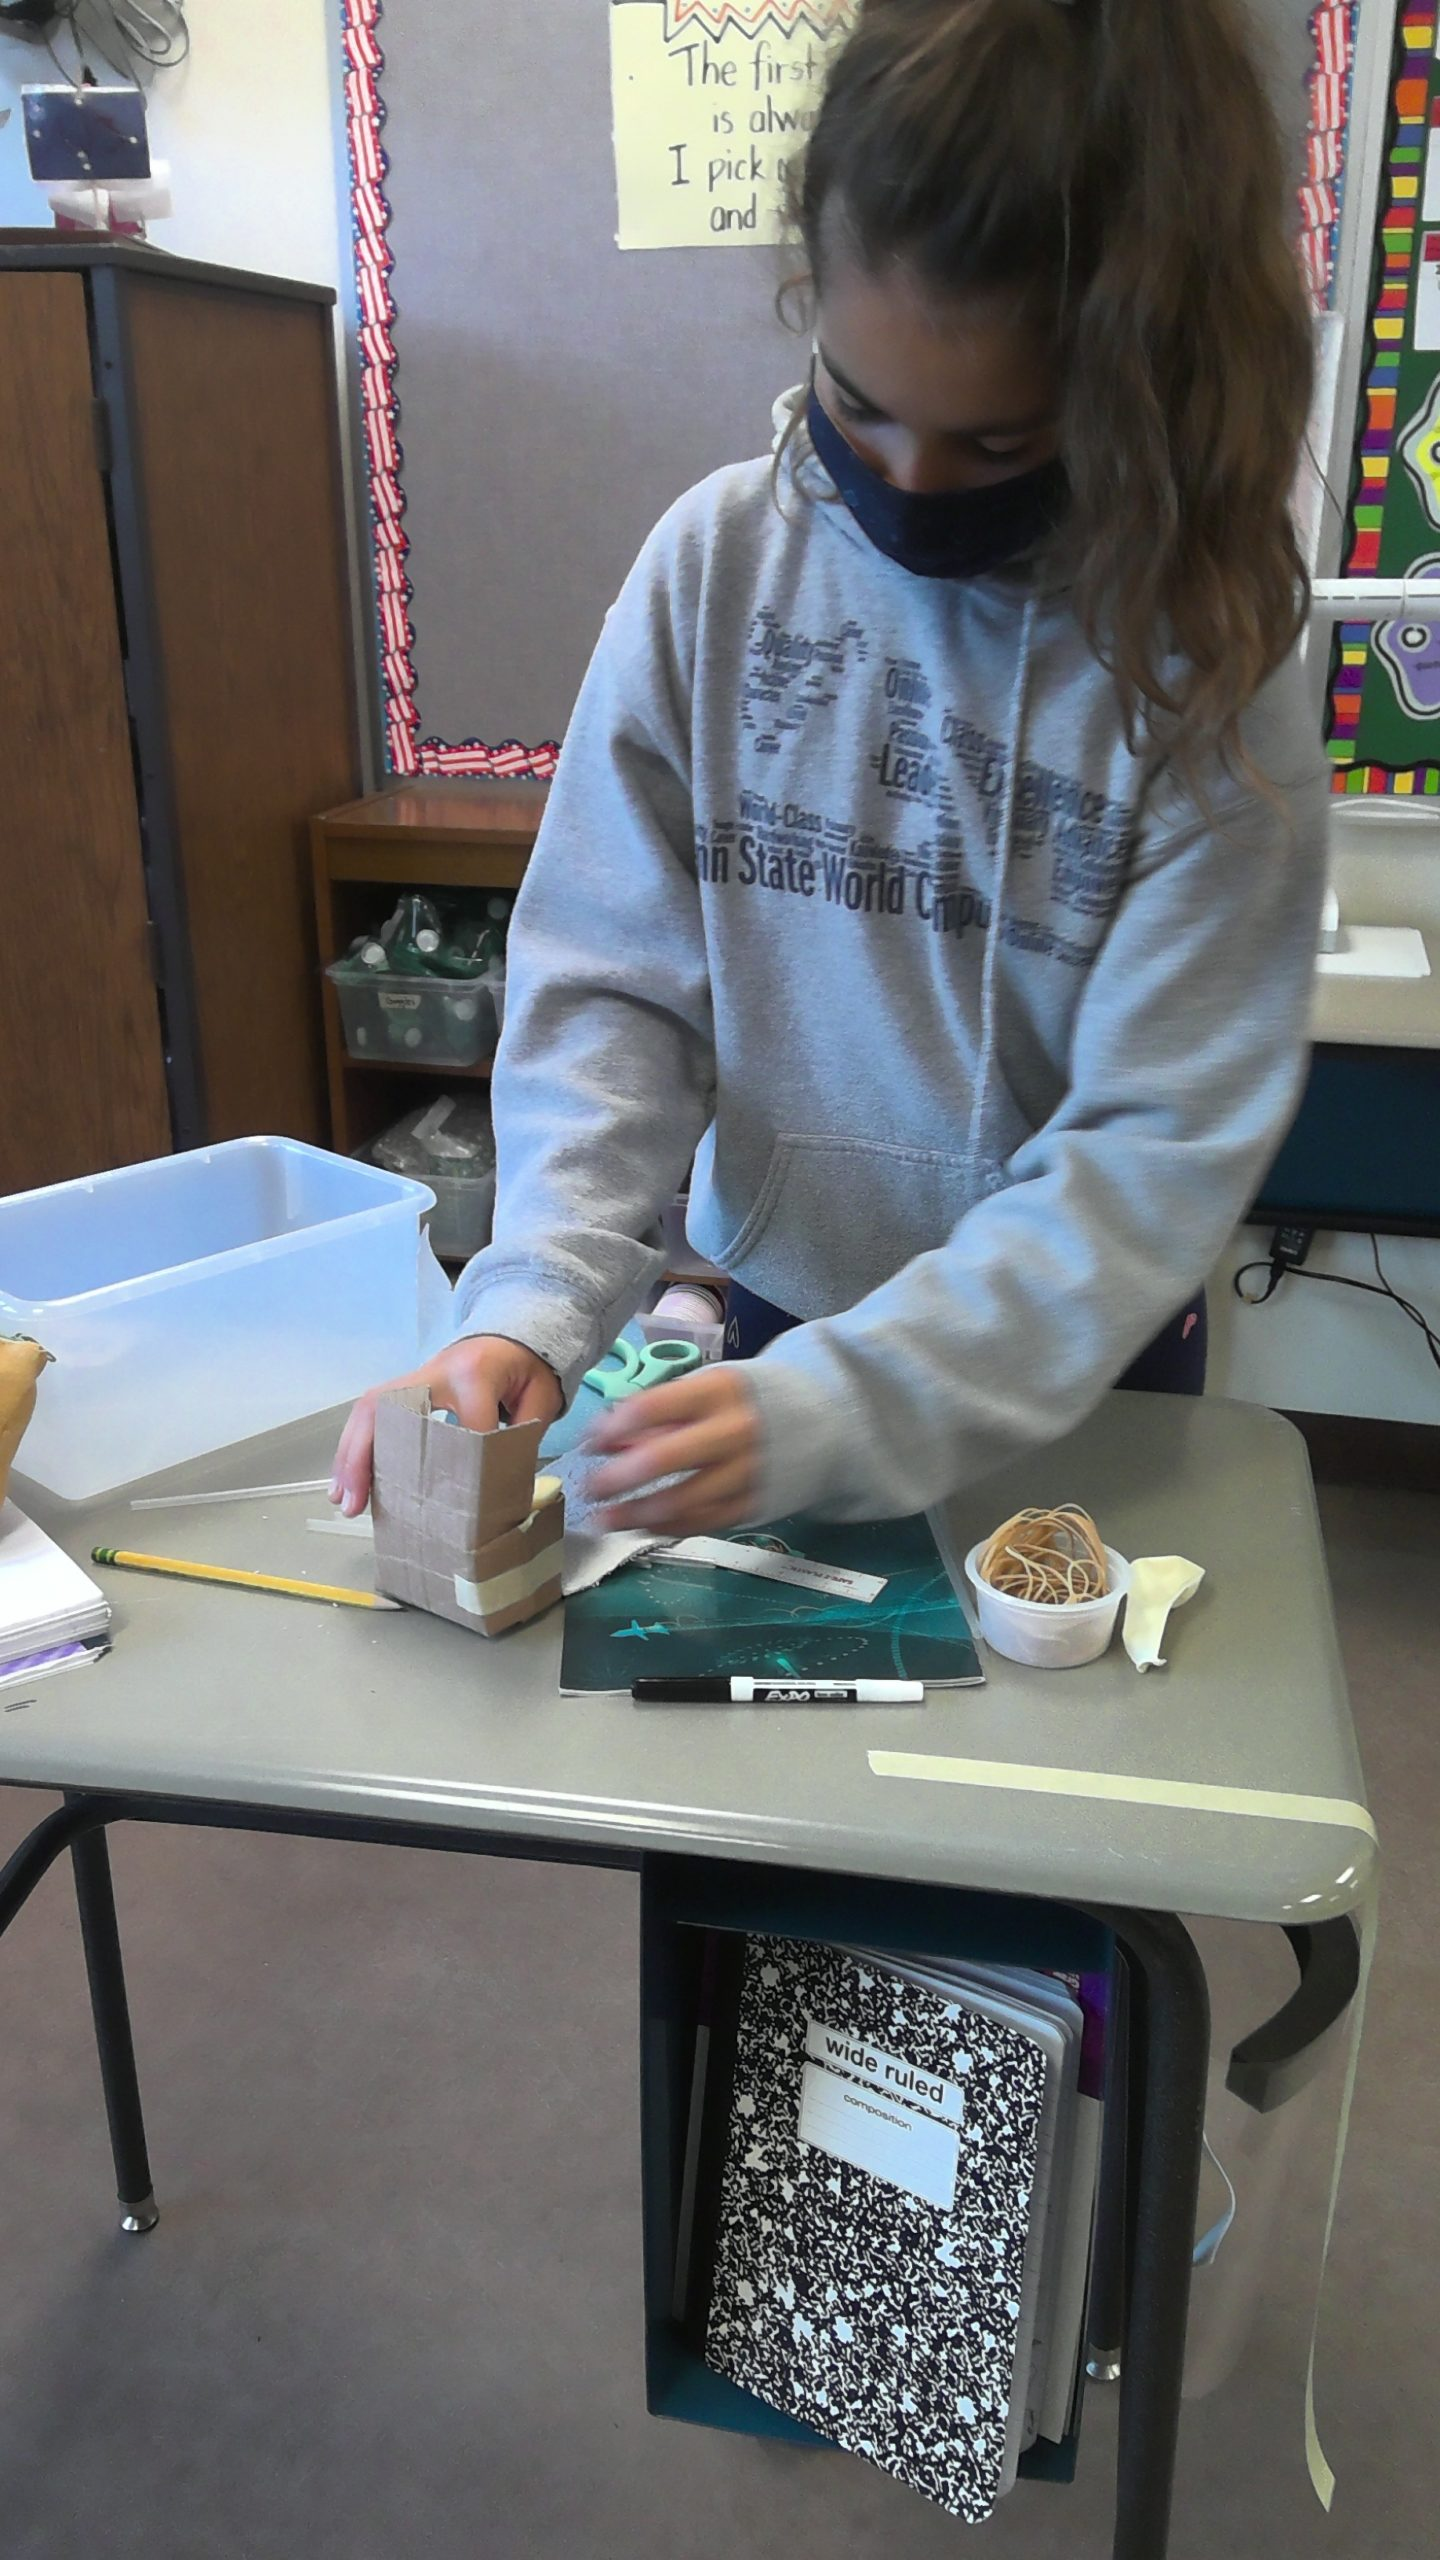 Students at the Tuckahoe School are learning about science through observation and experimentation. Students are applying the scientific method and the design process to design, build, and test an egg protection device. Testing and redesign will follow.